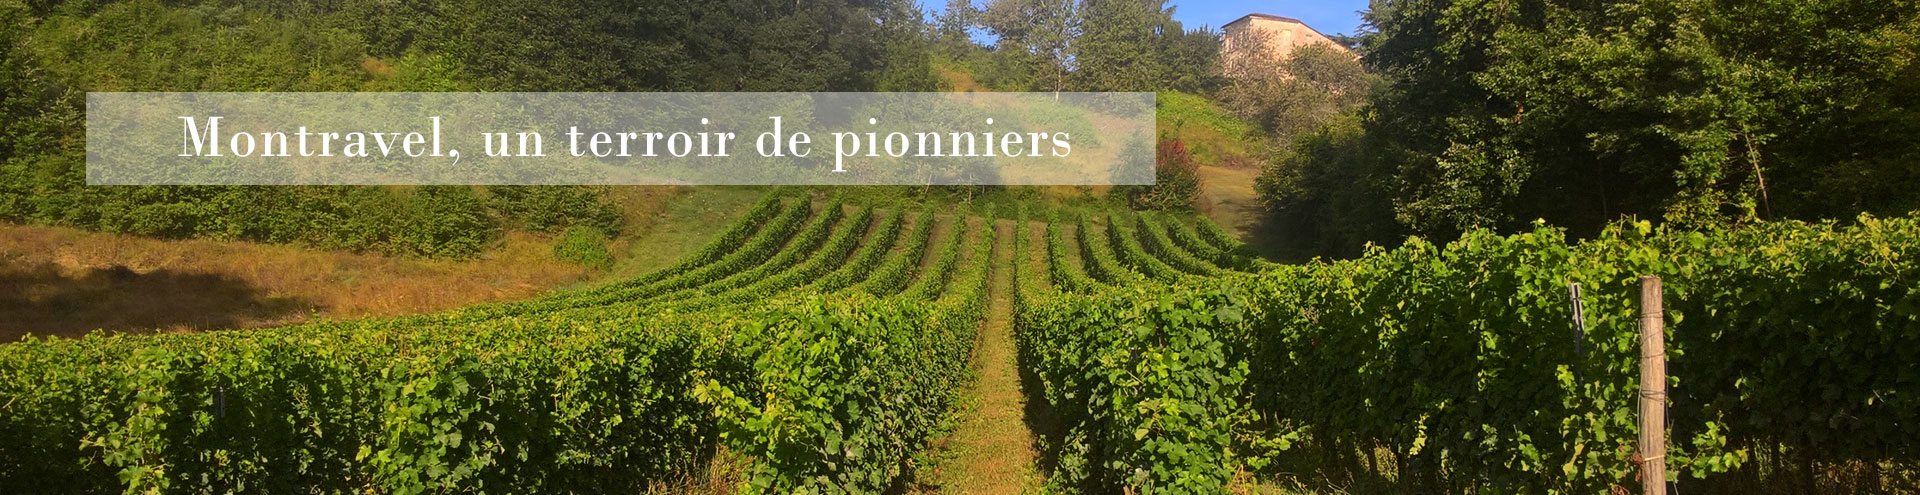 Vignoble Montravel